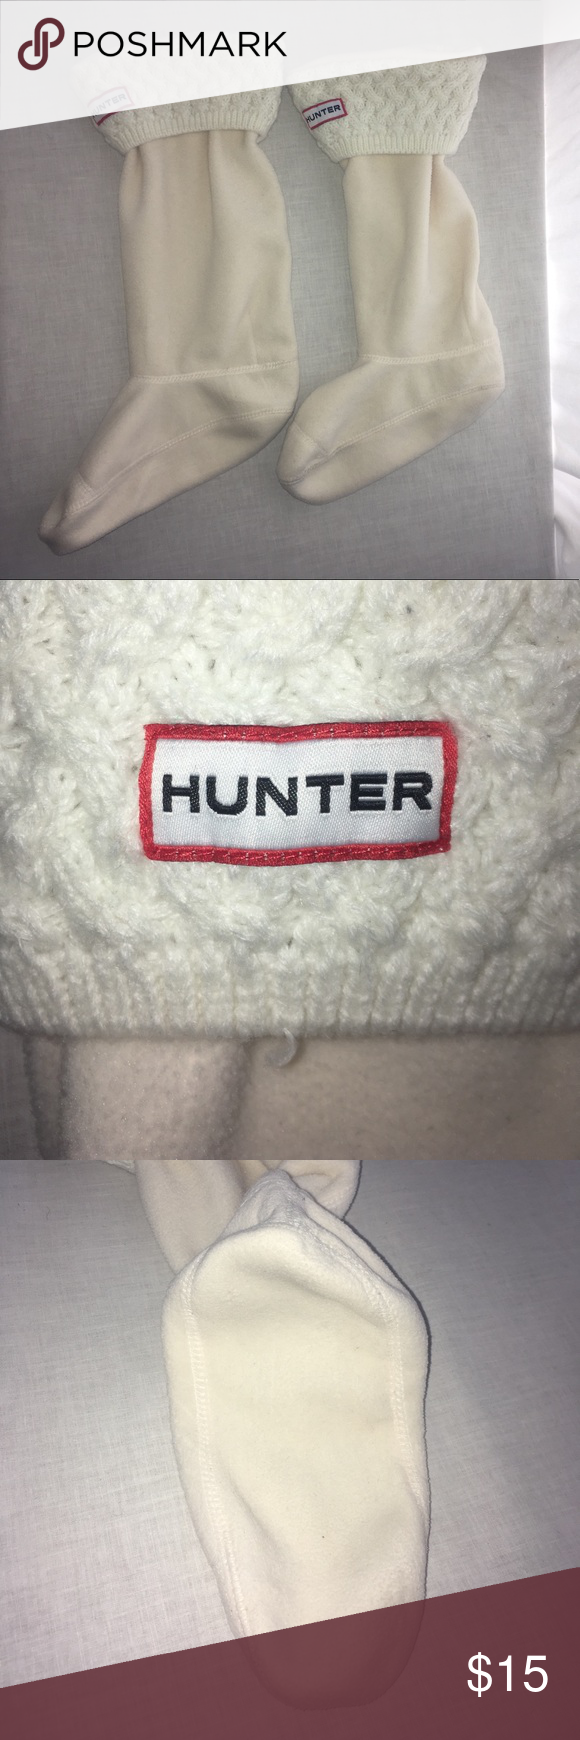 Hunter Fleece with Cable Knit Cuff Rain Boot Sock